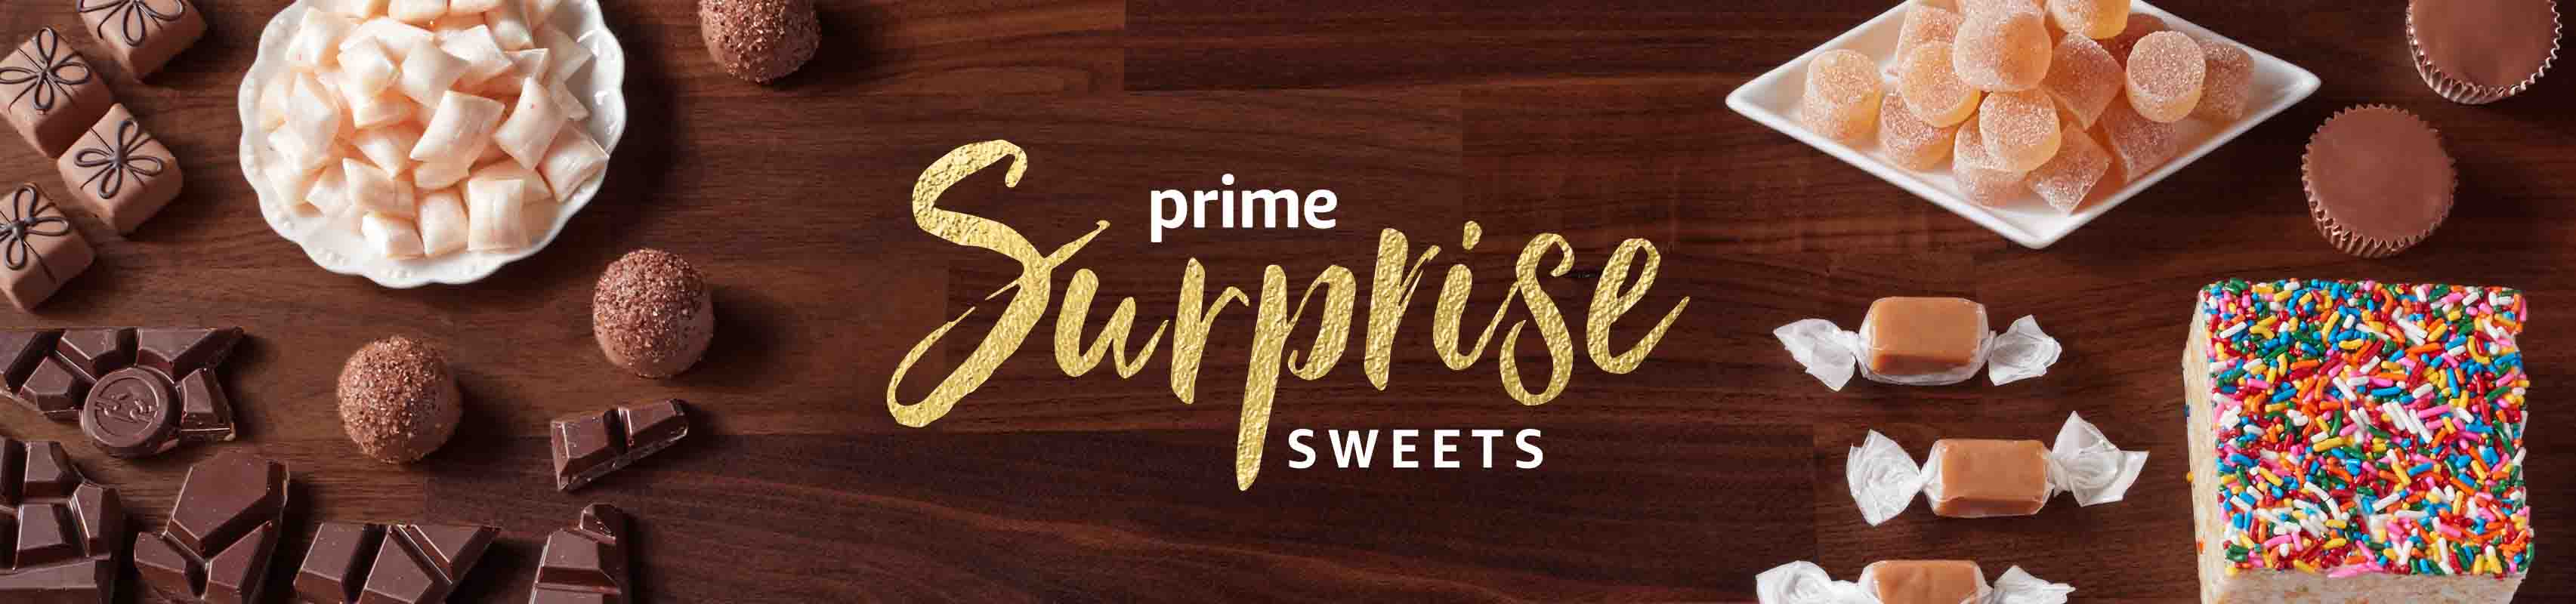 Benefits Customers Get from Amazon Prime Surprise Sweets